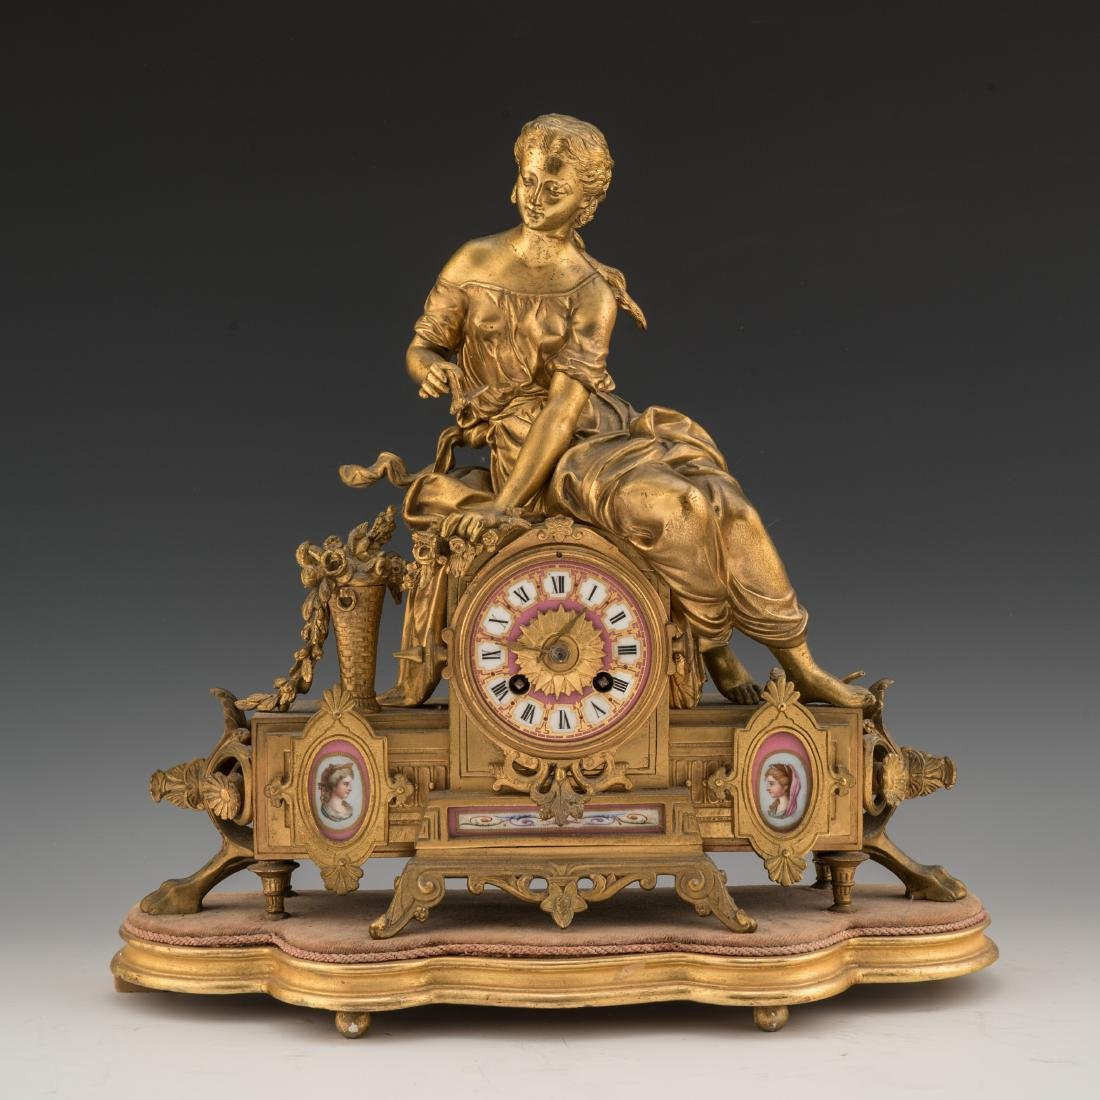 A 19TH CENTURY FRENCH LOUIS XVI-STYLE GILT BRONZE AND